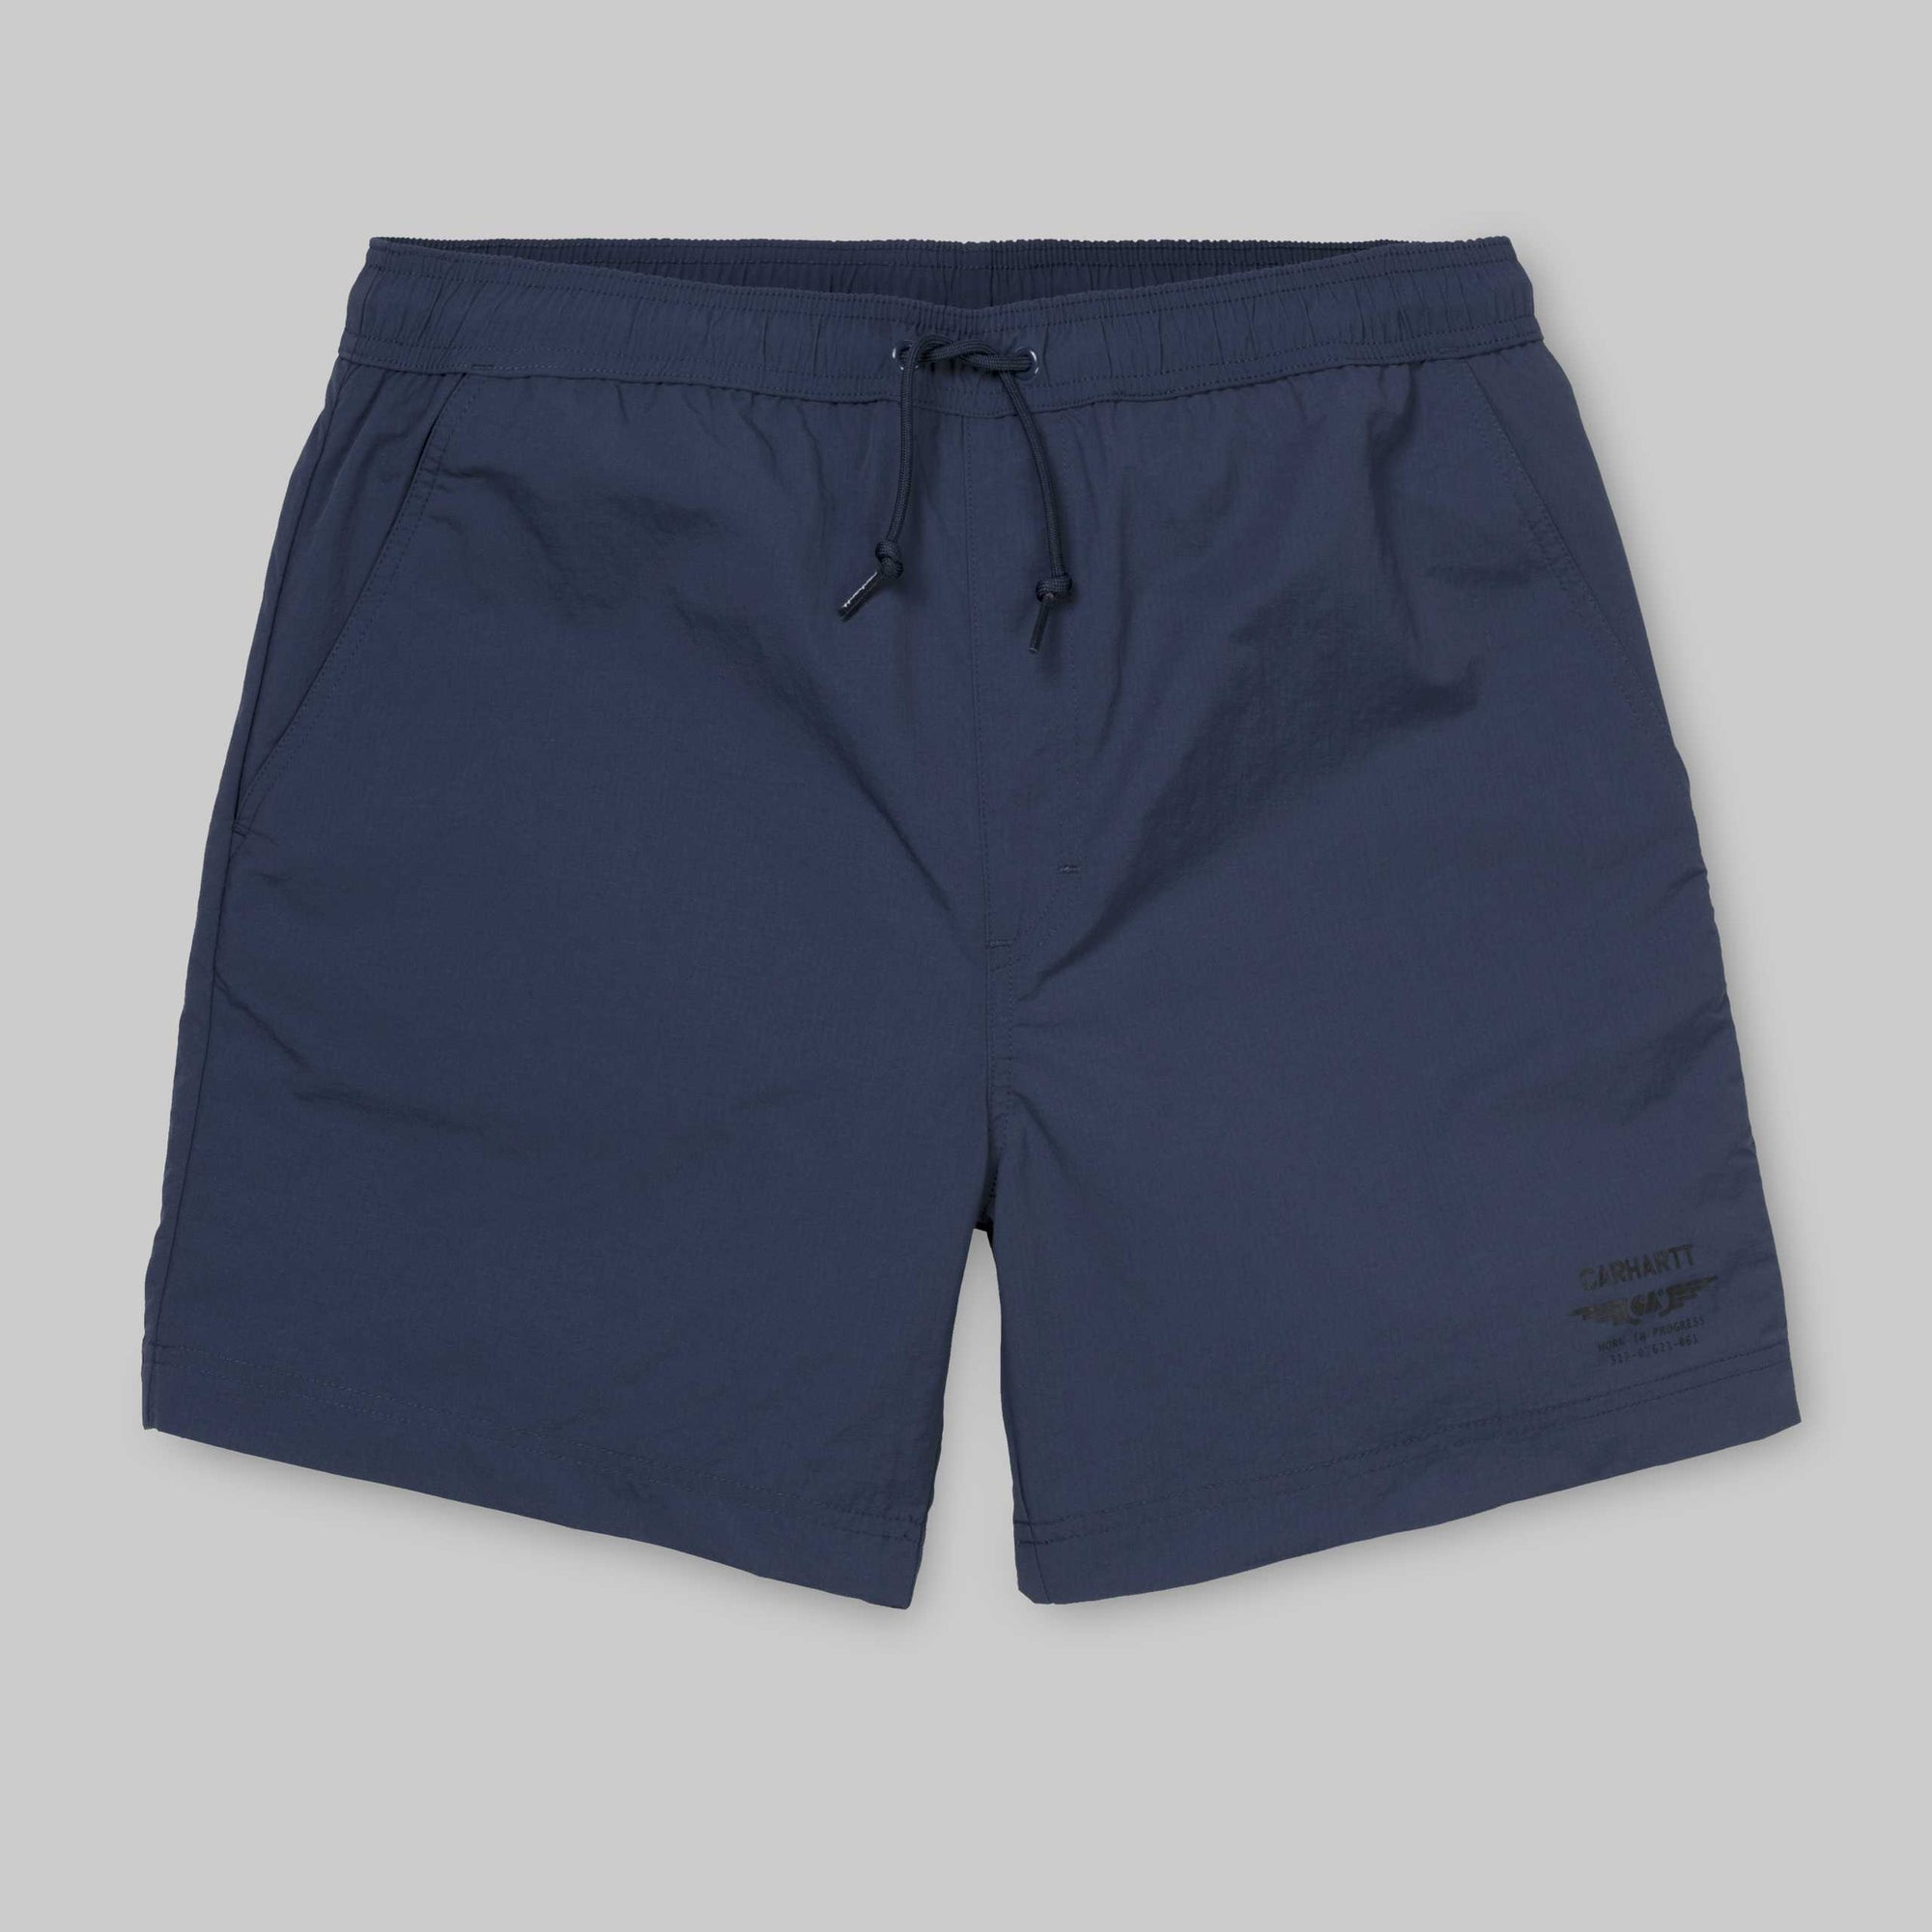 Carhartt WIP - Blue Wings Swim Trunks